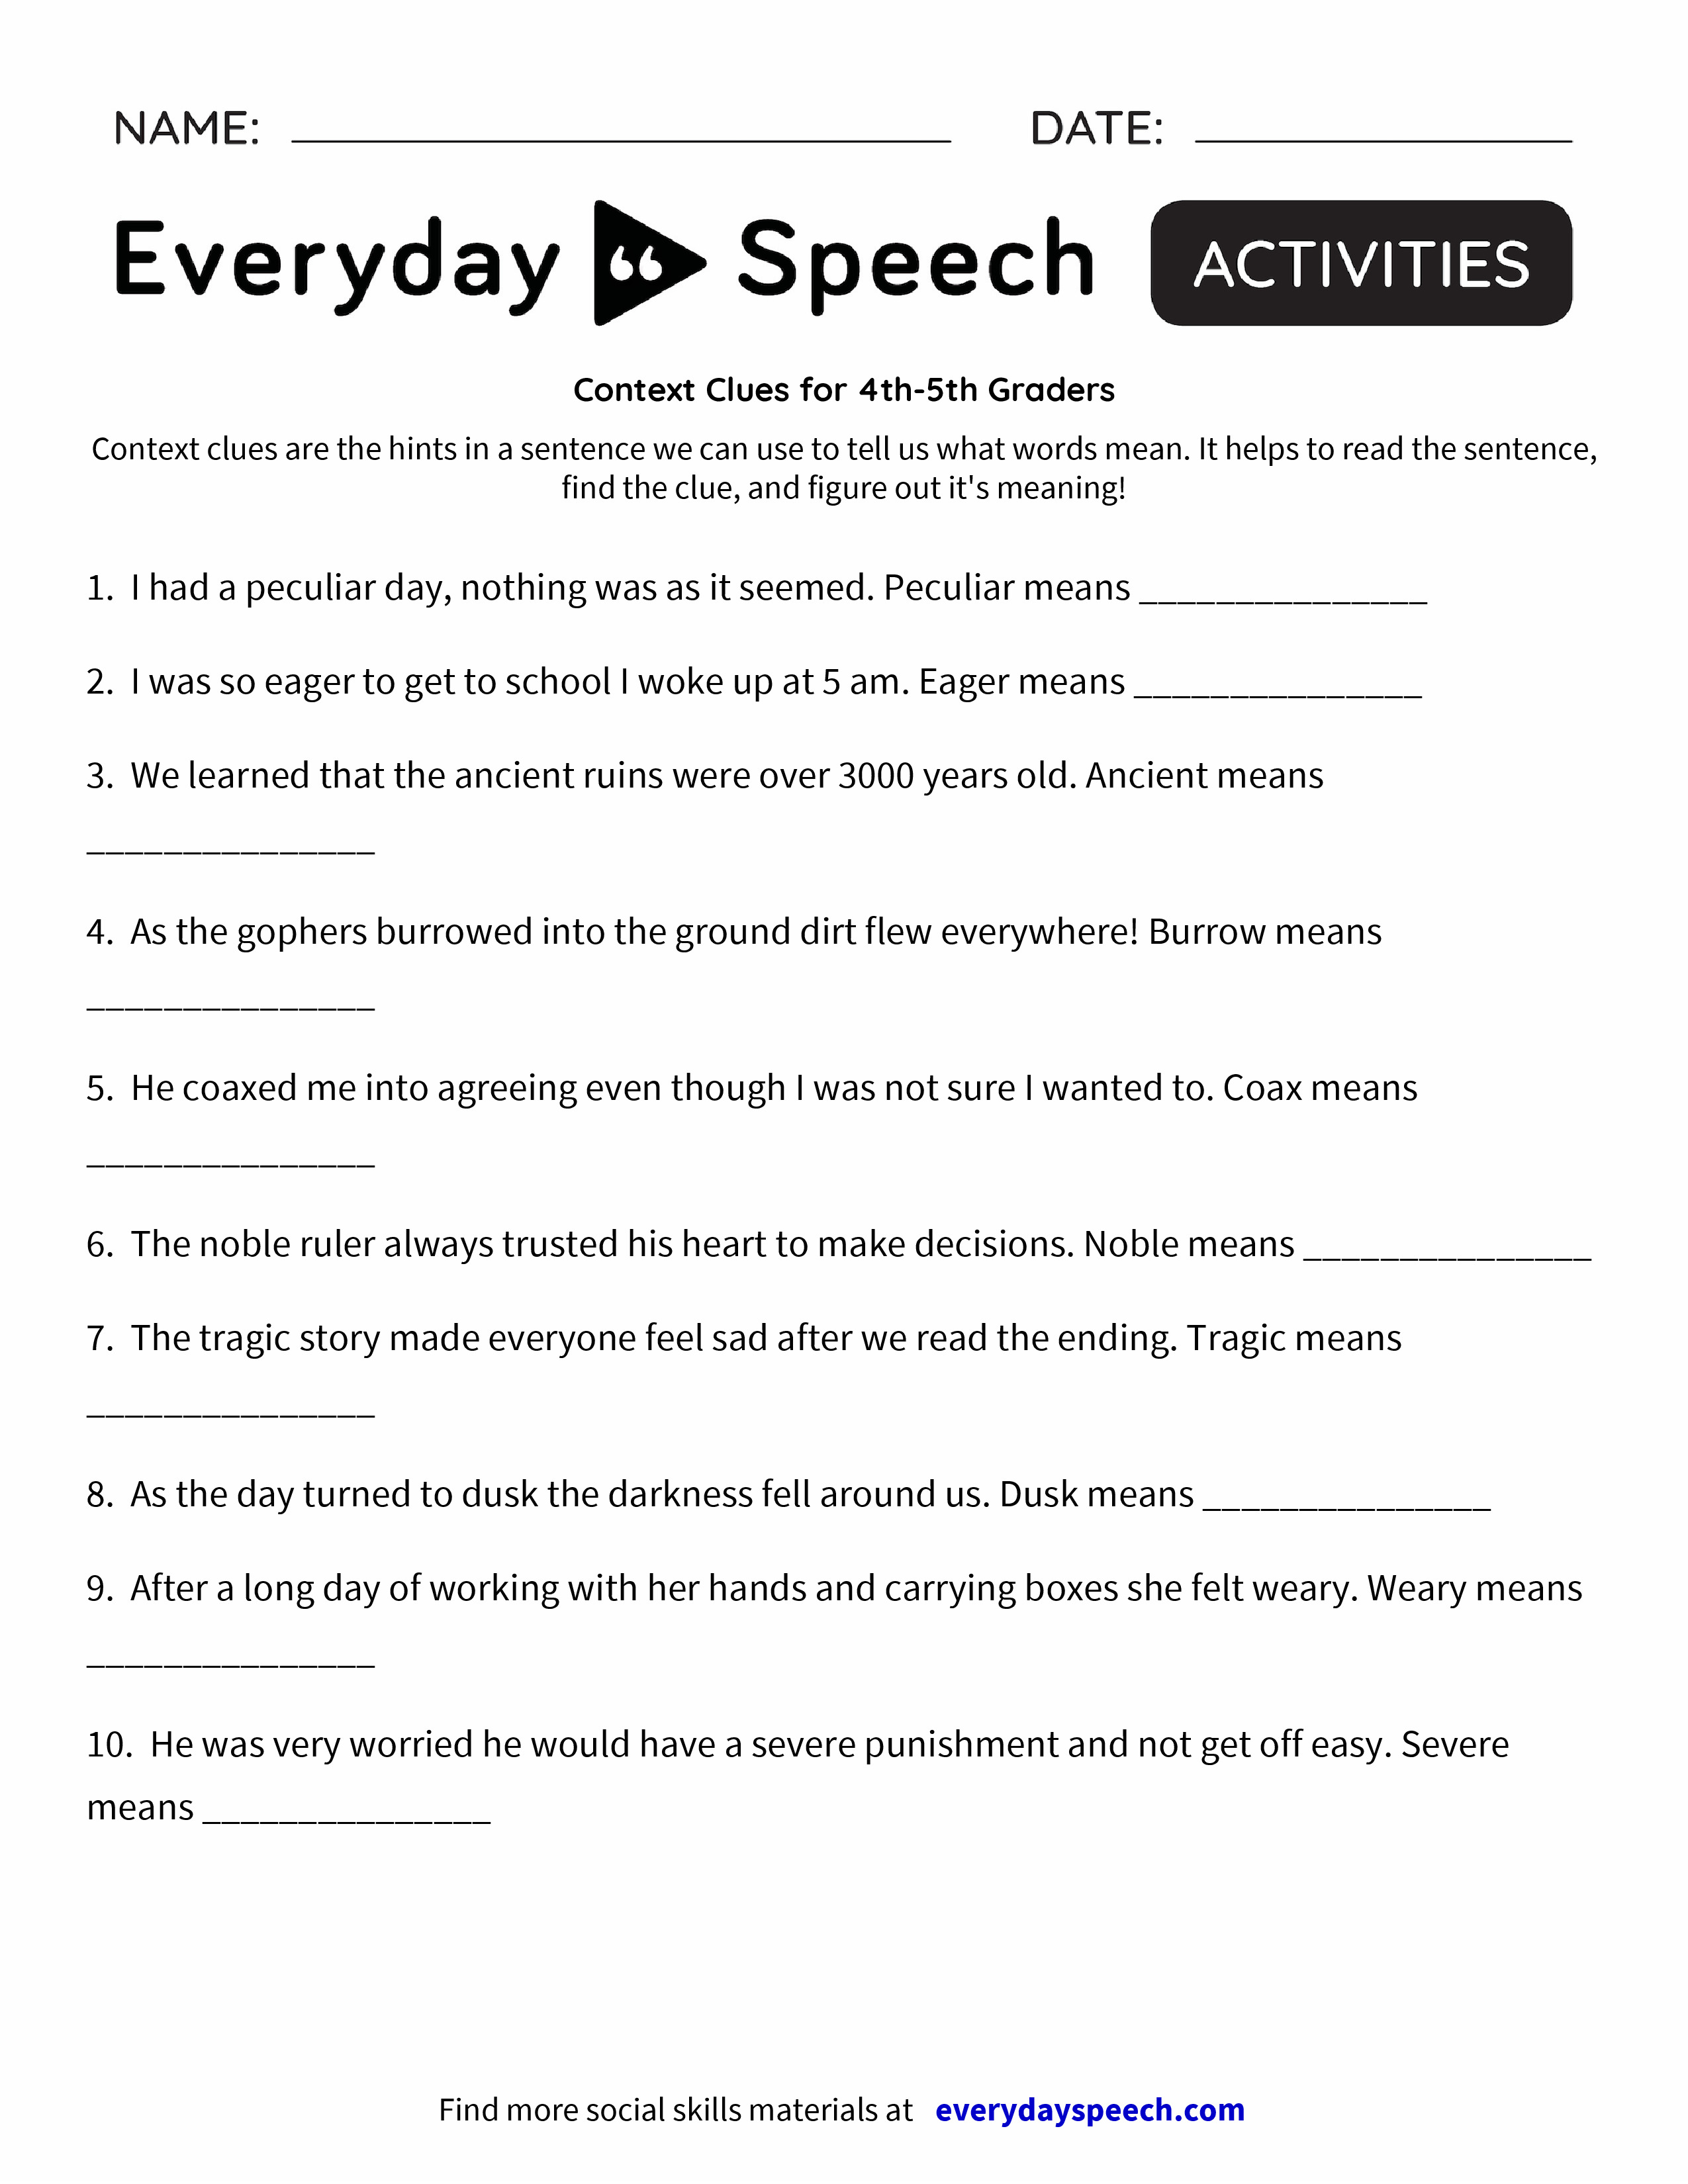 Worksheets Context Clues Worksheet context clues for 4th 5th graders everyday speech preview